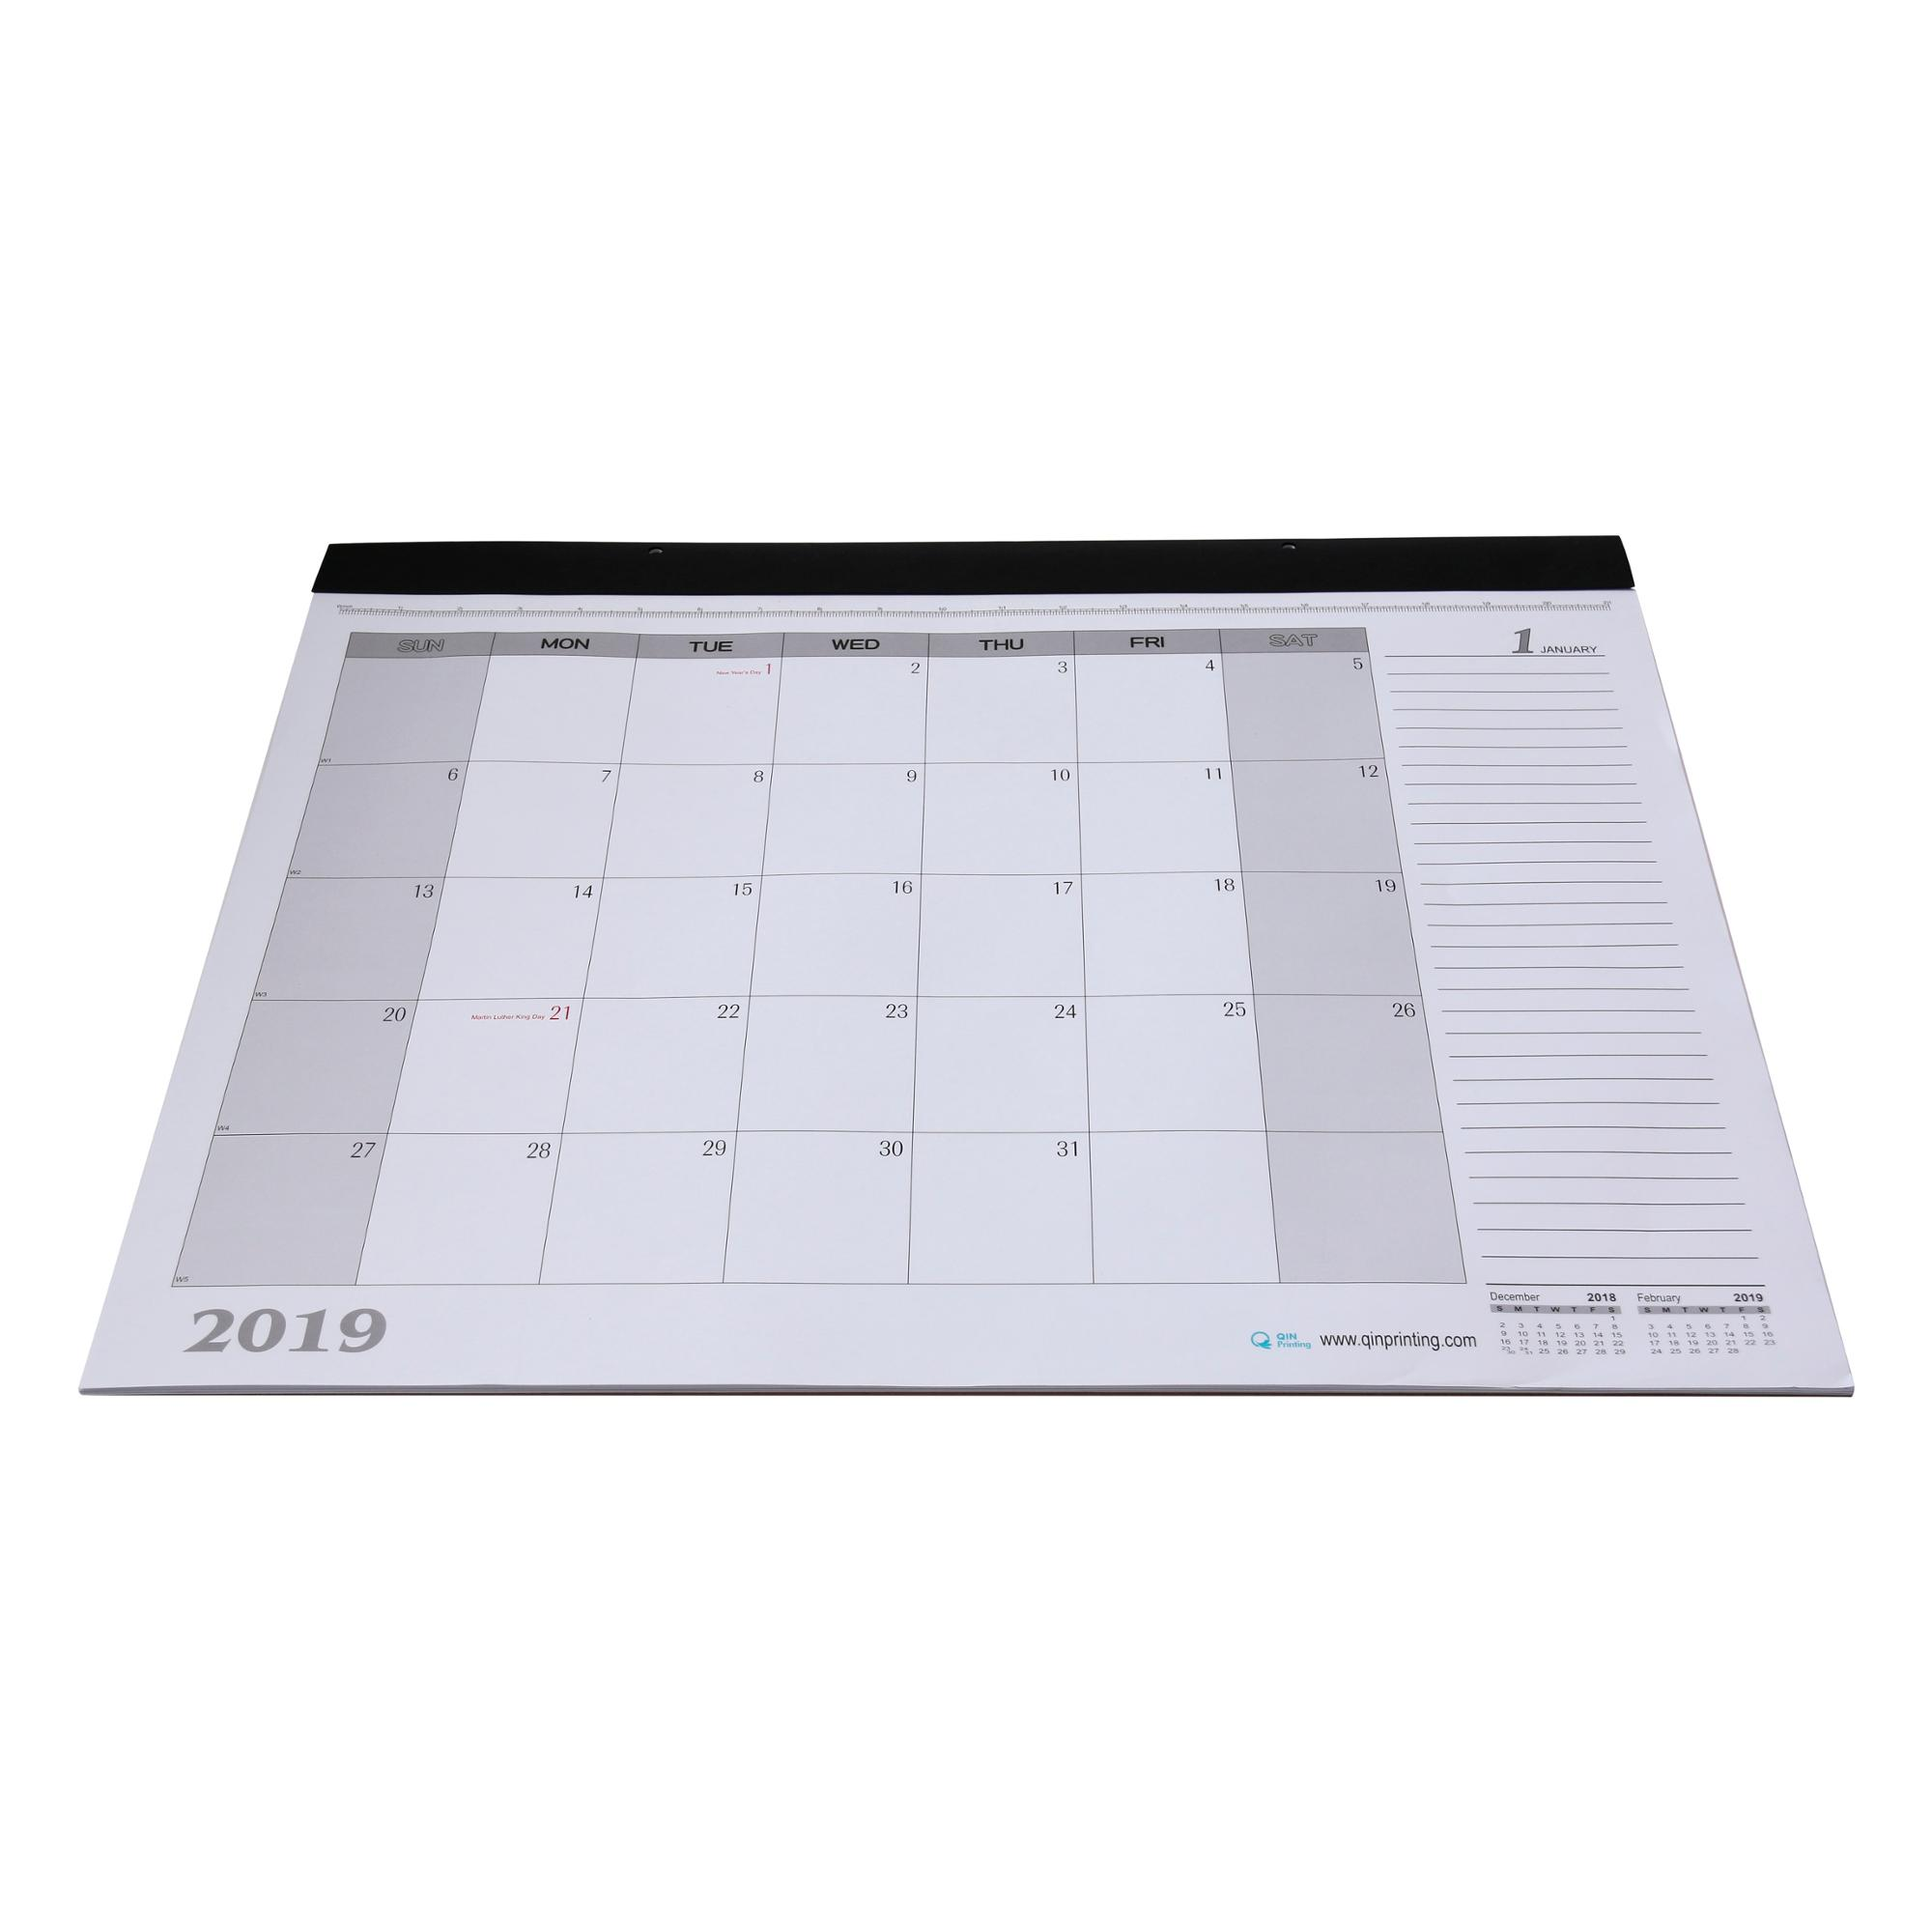 Print Custom Monthly Desk Pad Calendar 2019 View Custom Monthly Desk Pad Calendar 2019 Qinprinting Product Details From Shanghai Qinqin Printing